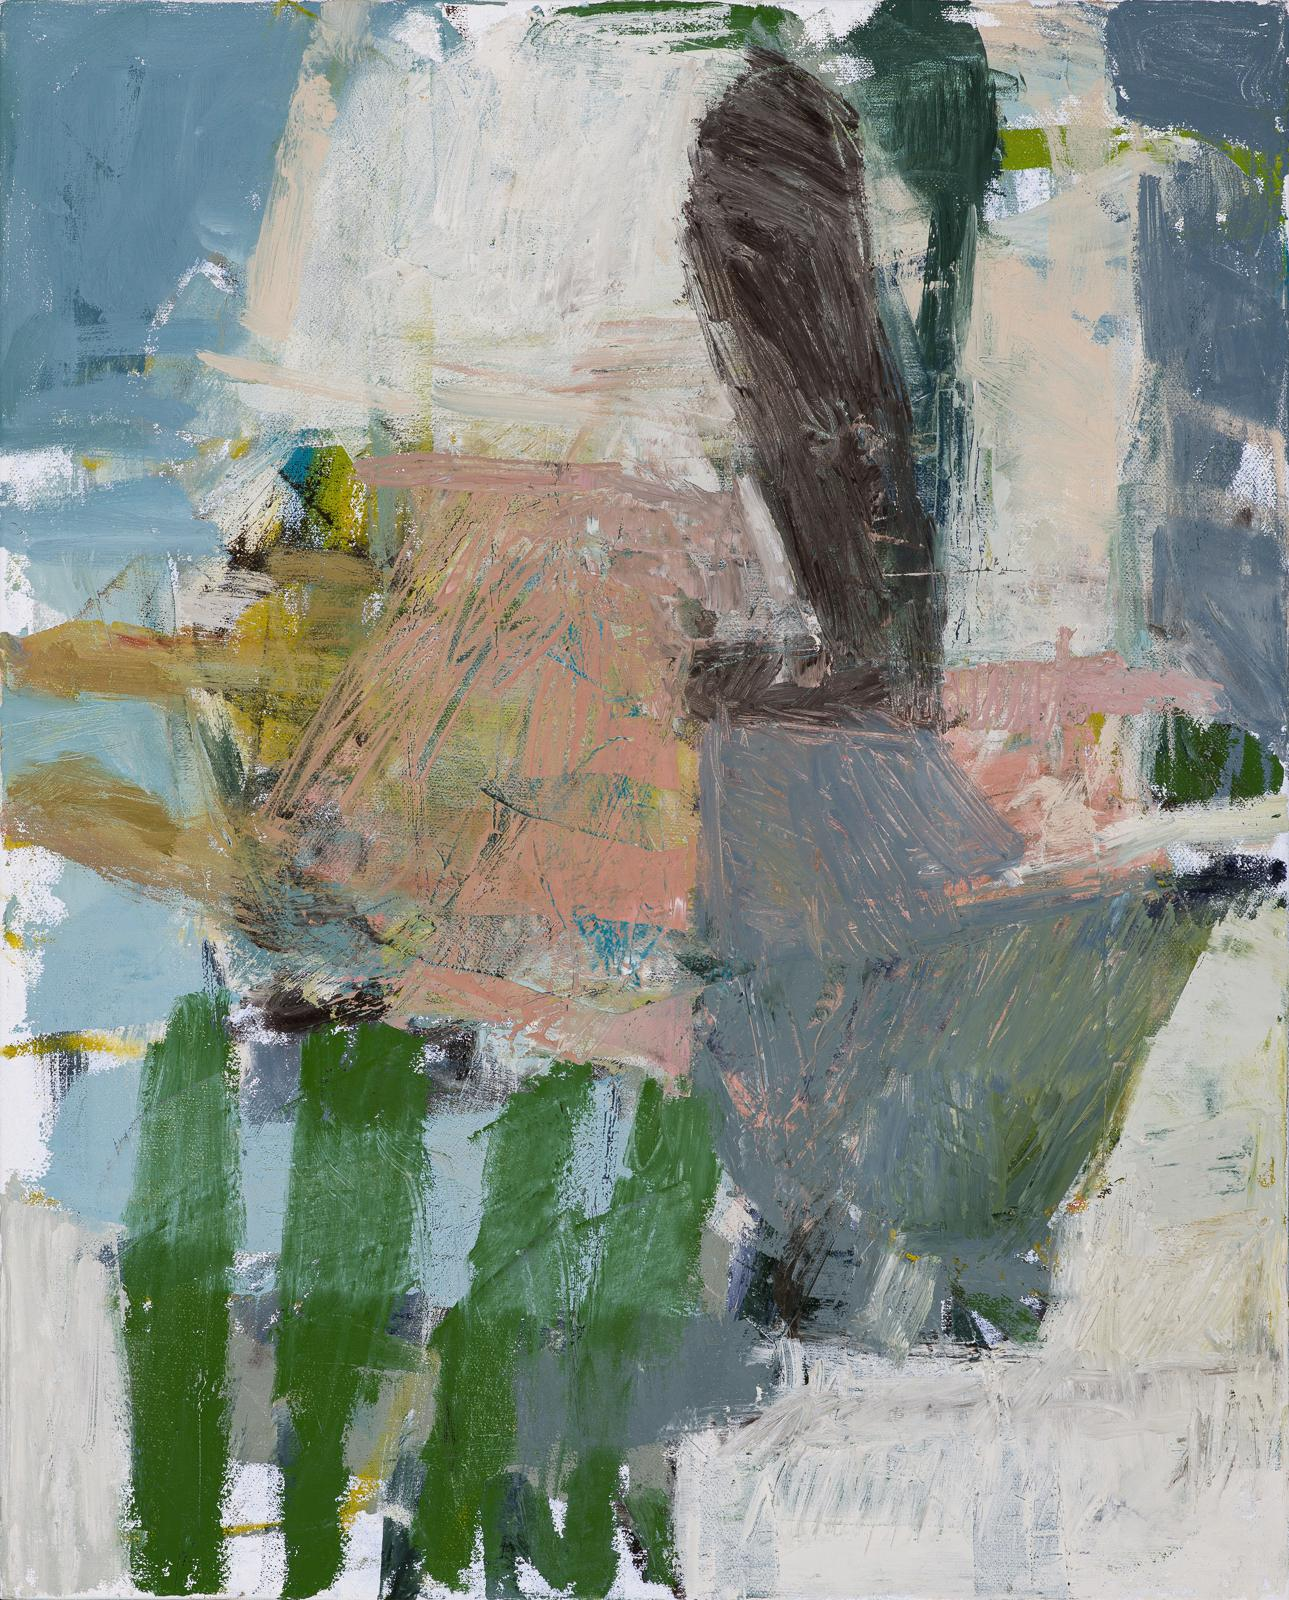 What Do I know of This Place 5 (Abstract Expressionist Painting on Canvas)